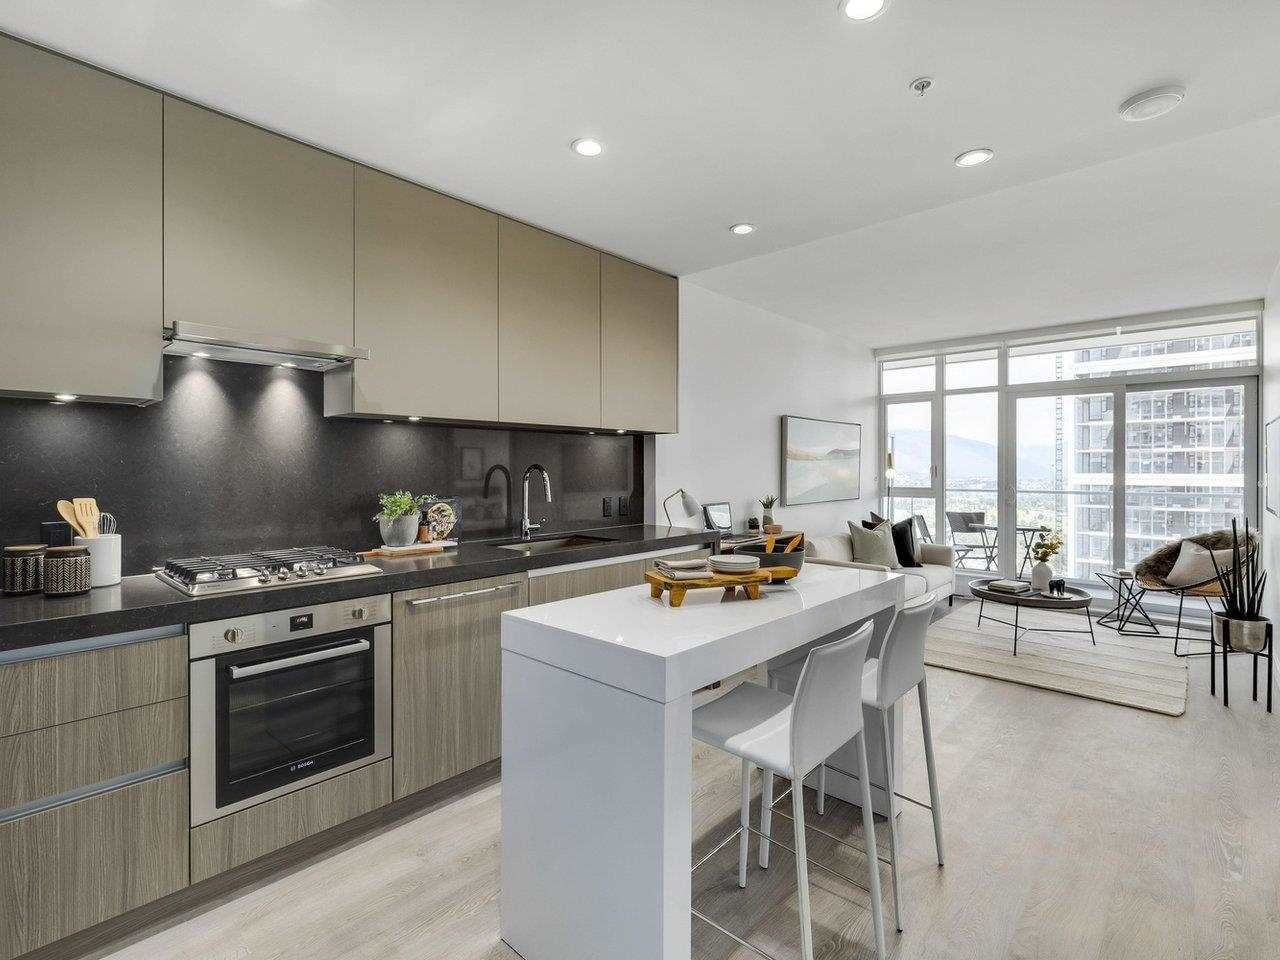 """Main Photo: 2806 6080 MCKAY Avenue in Burnaby: Metrotown Condo for sale in """"Station Square 4"""" (Burnaby South)  : MLS®# R2590573"""